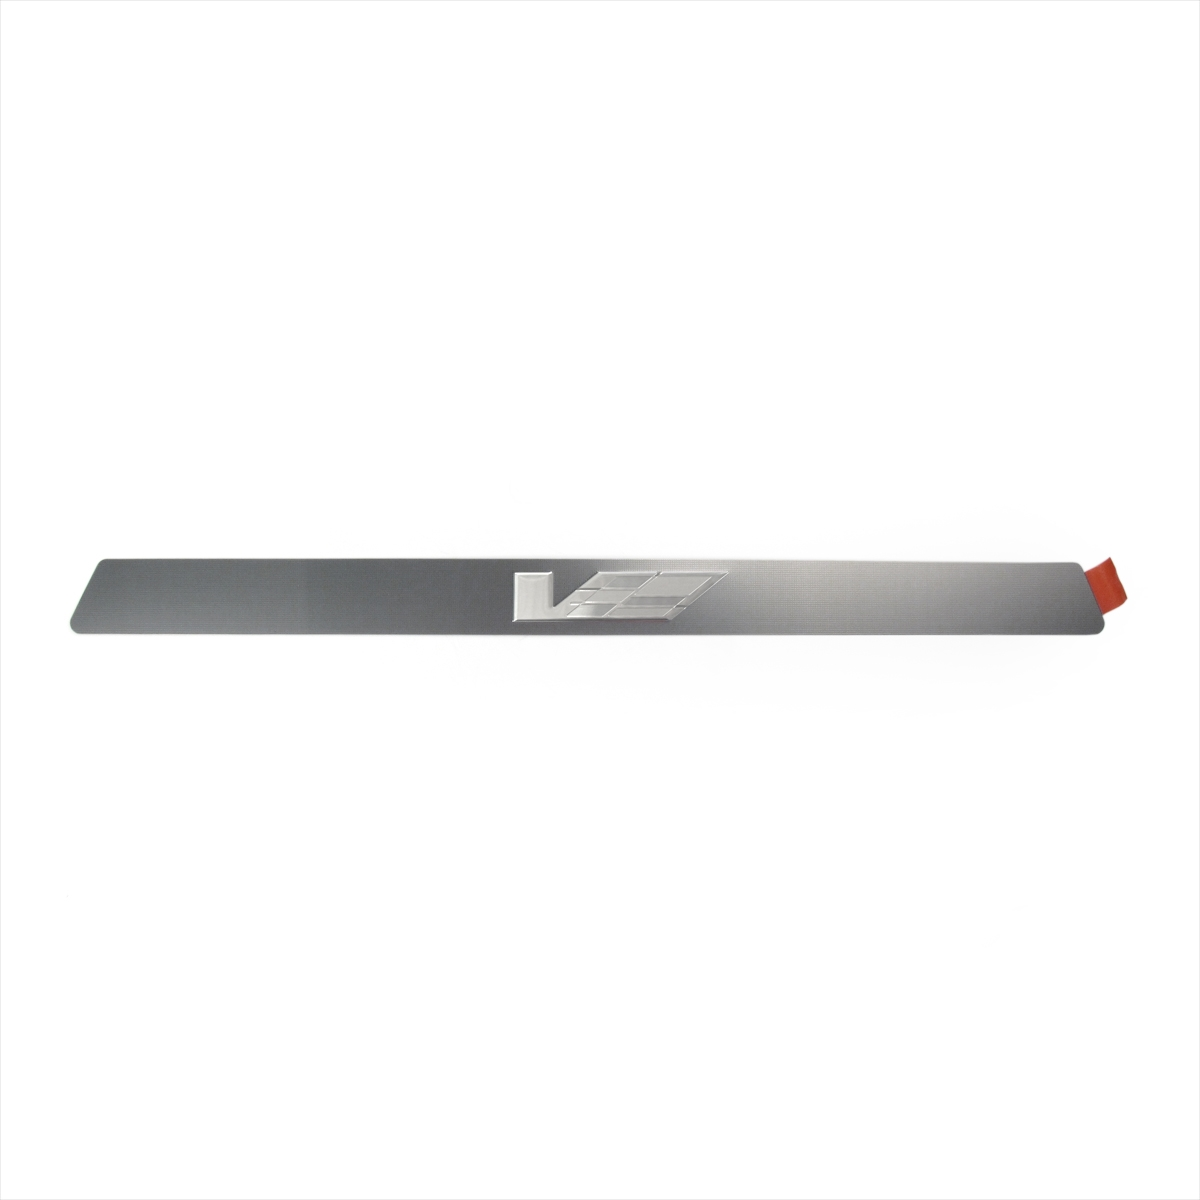 Decorating front door sill pictures : 10355500 Front Door Sill Plate Assembly - SMC Performance and Auto ...